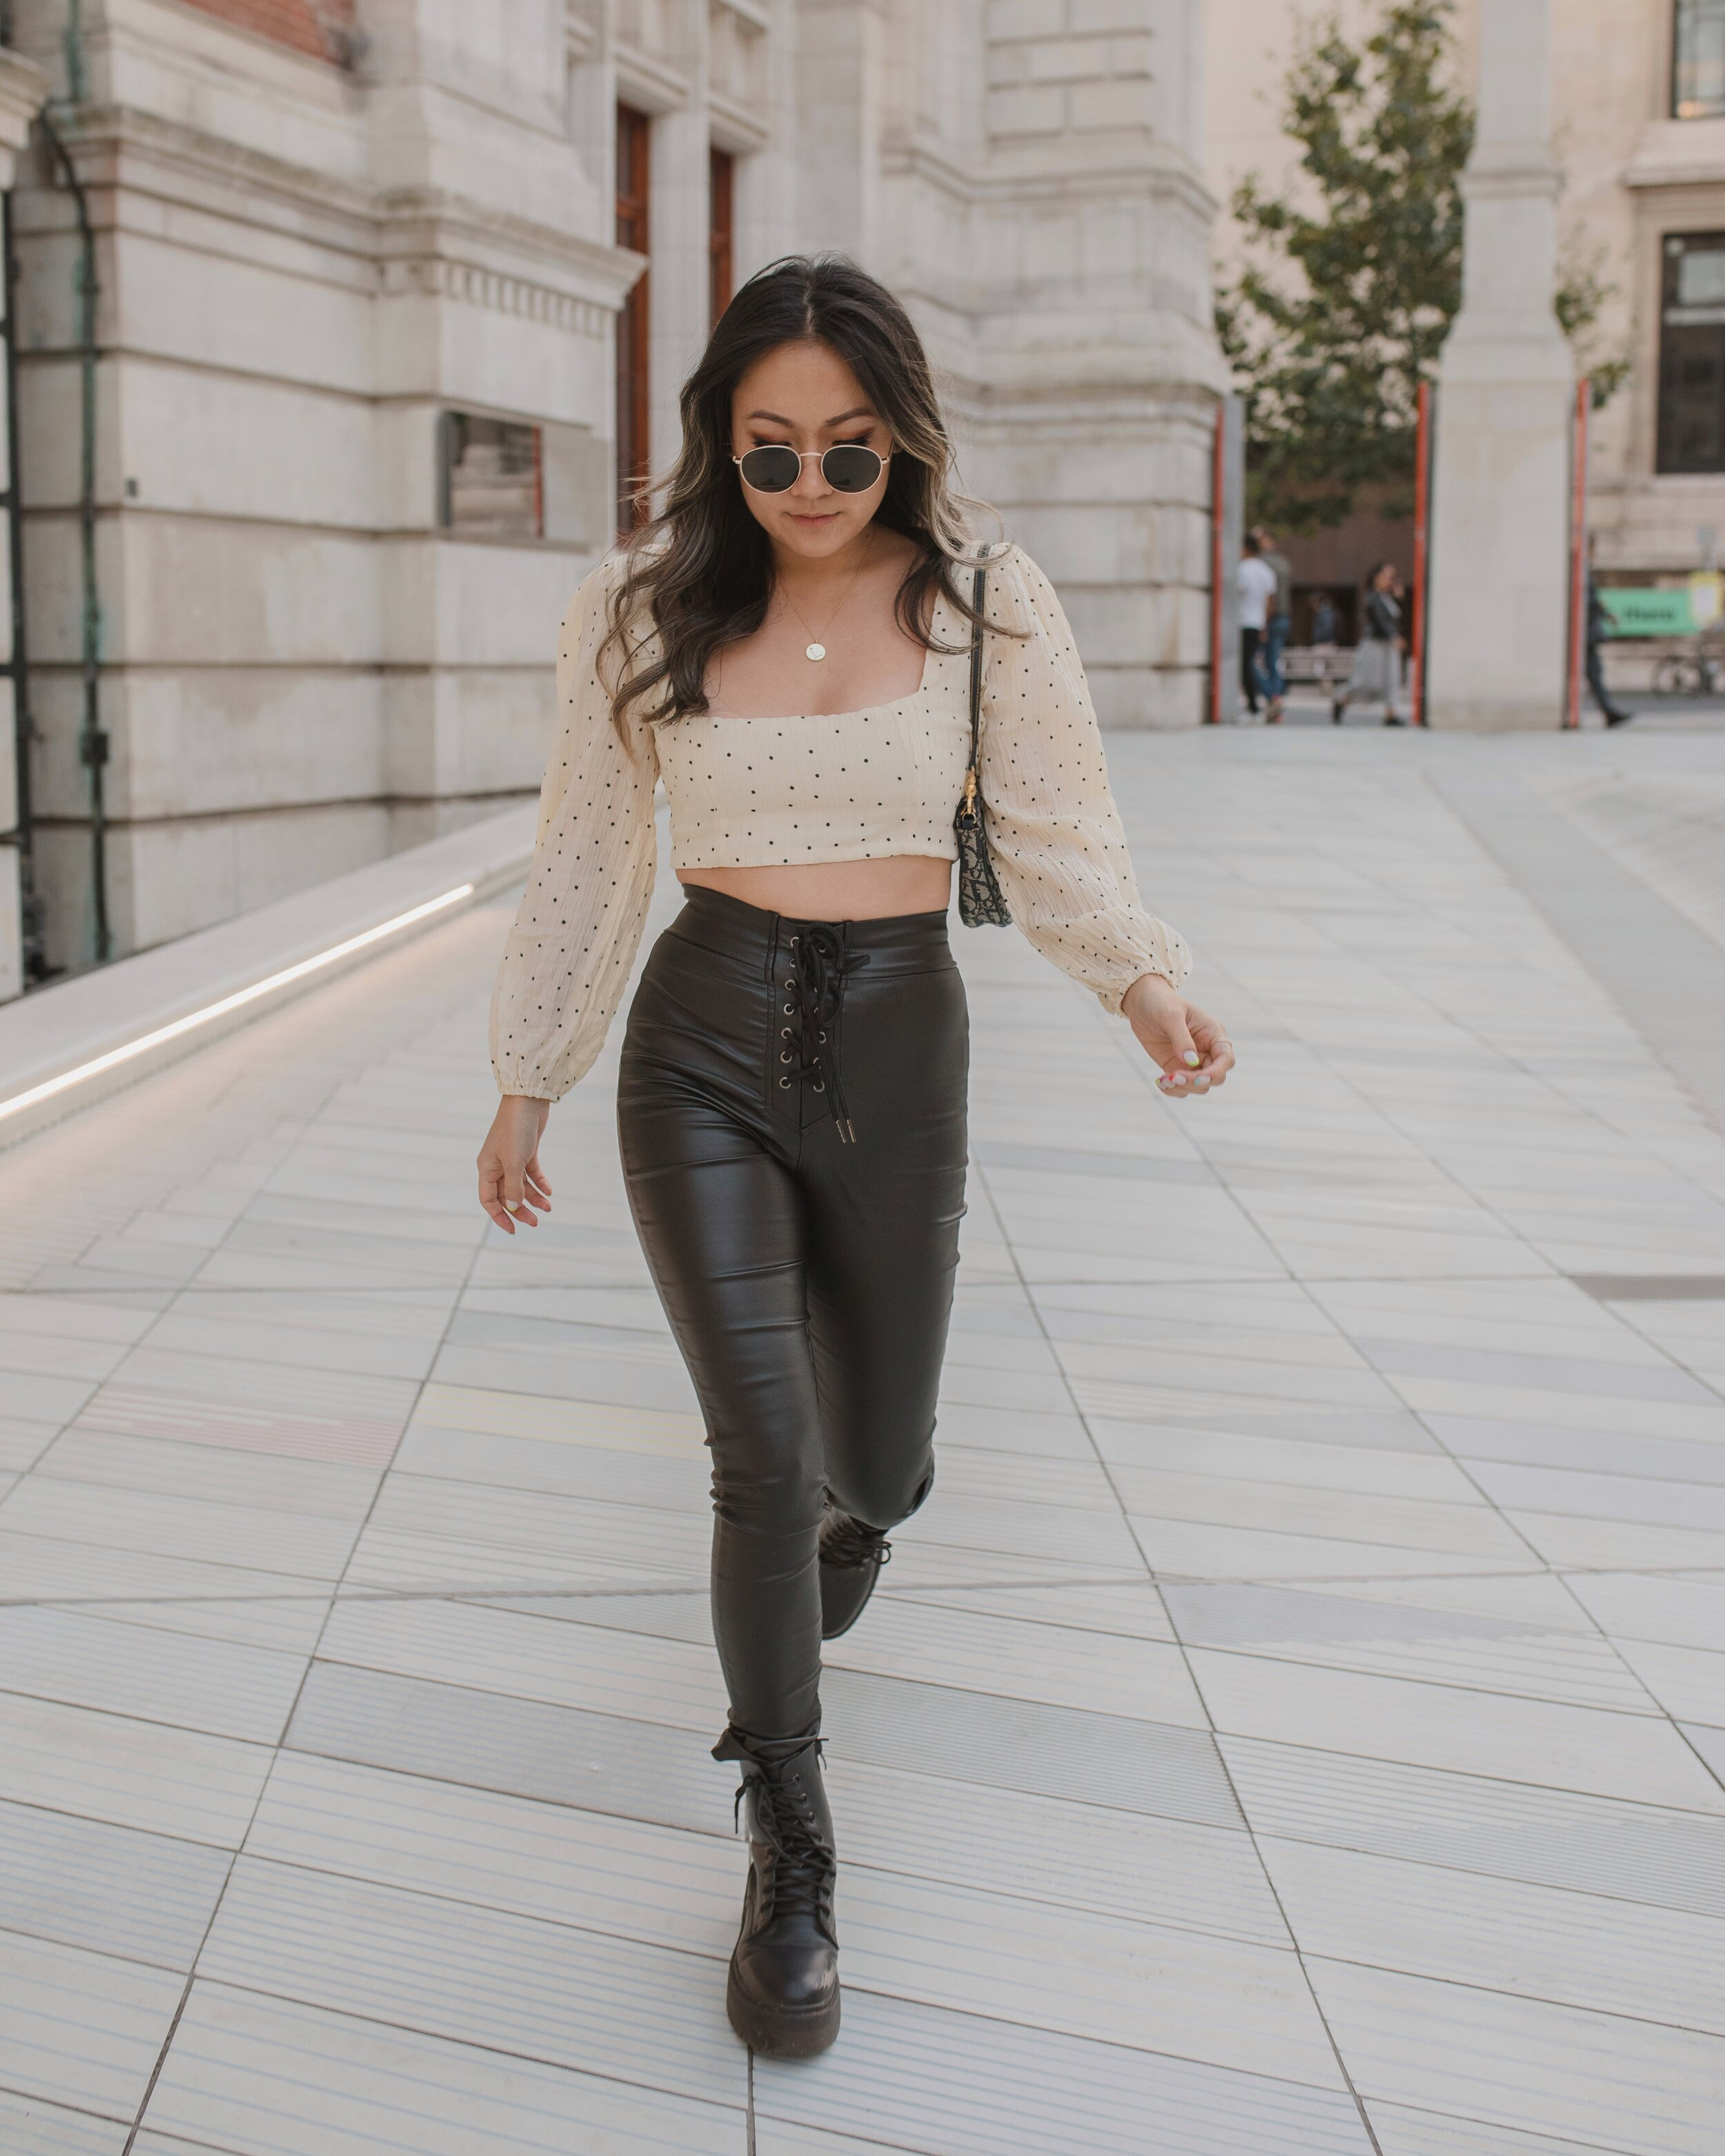 Shop all my looks  HERE .